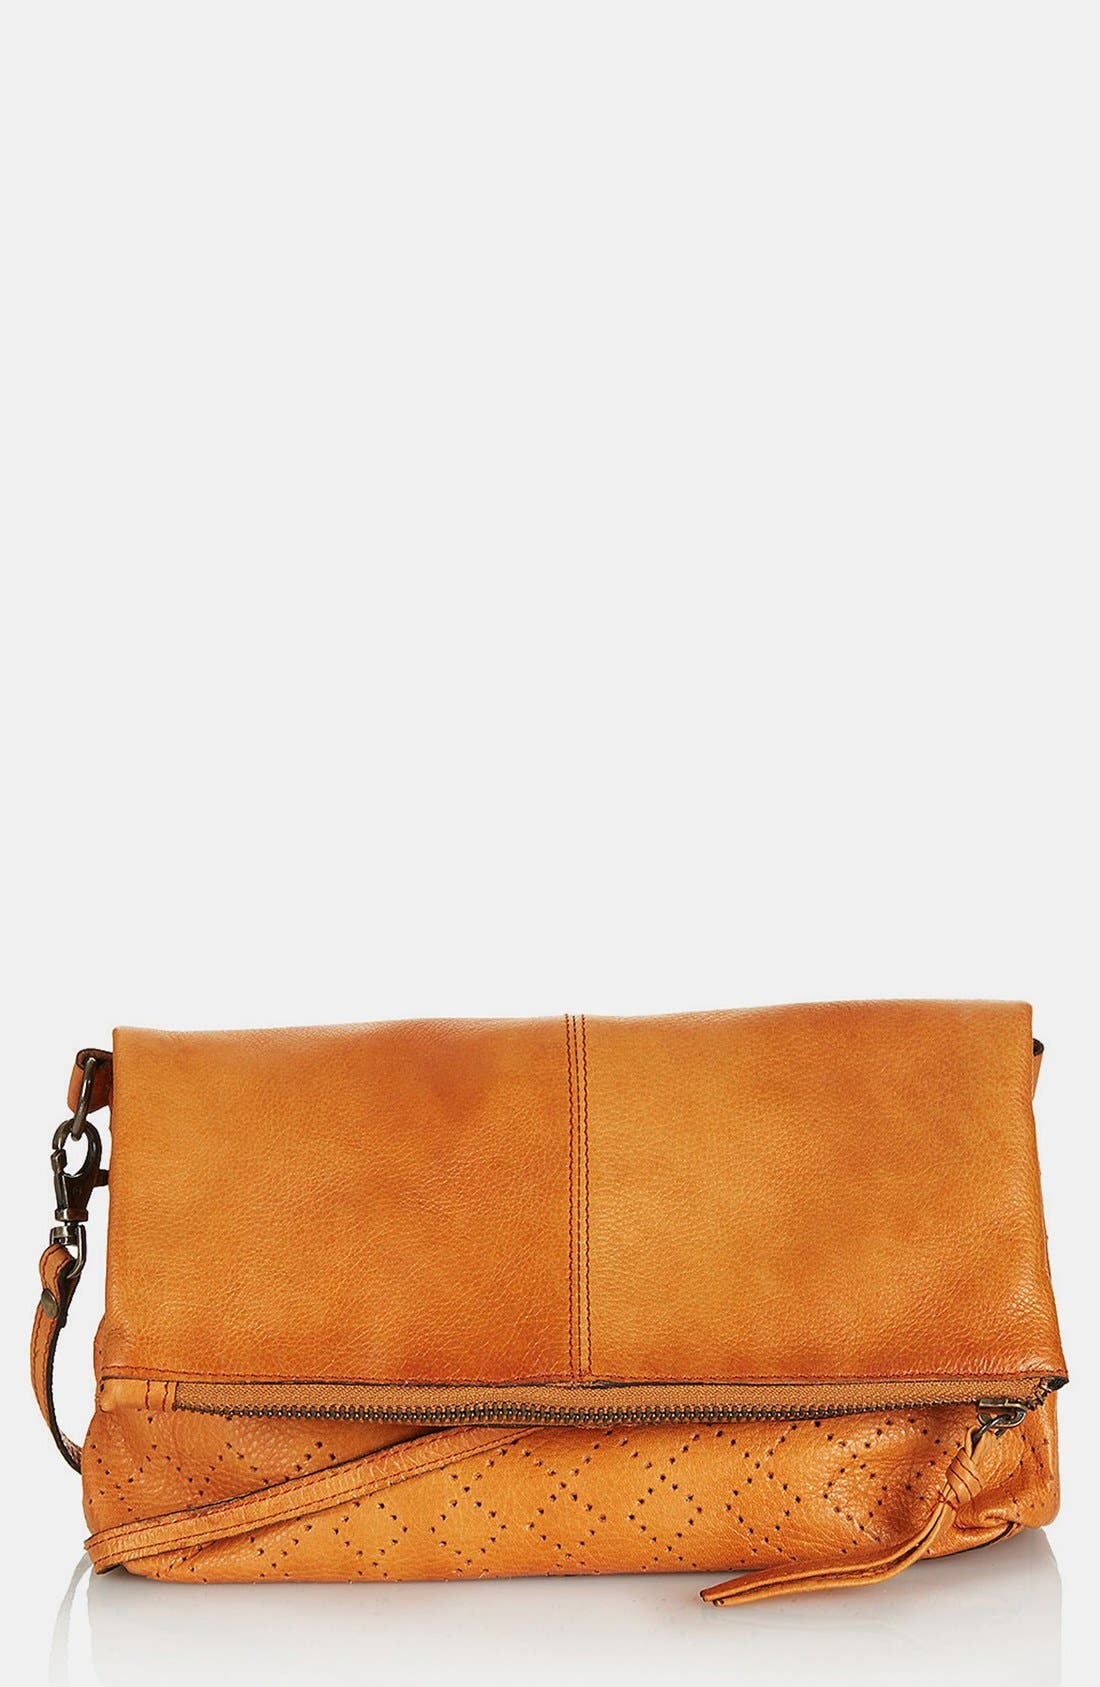 Alternate Image 1 Selected - Topshop 'New Perforated' Leather Crossbody Bag